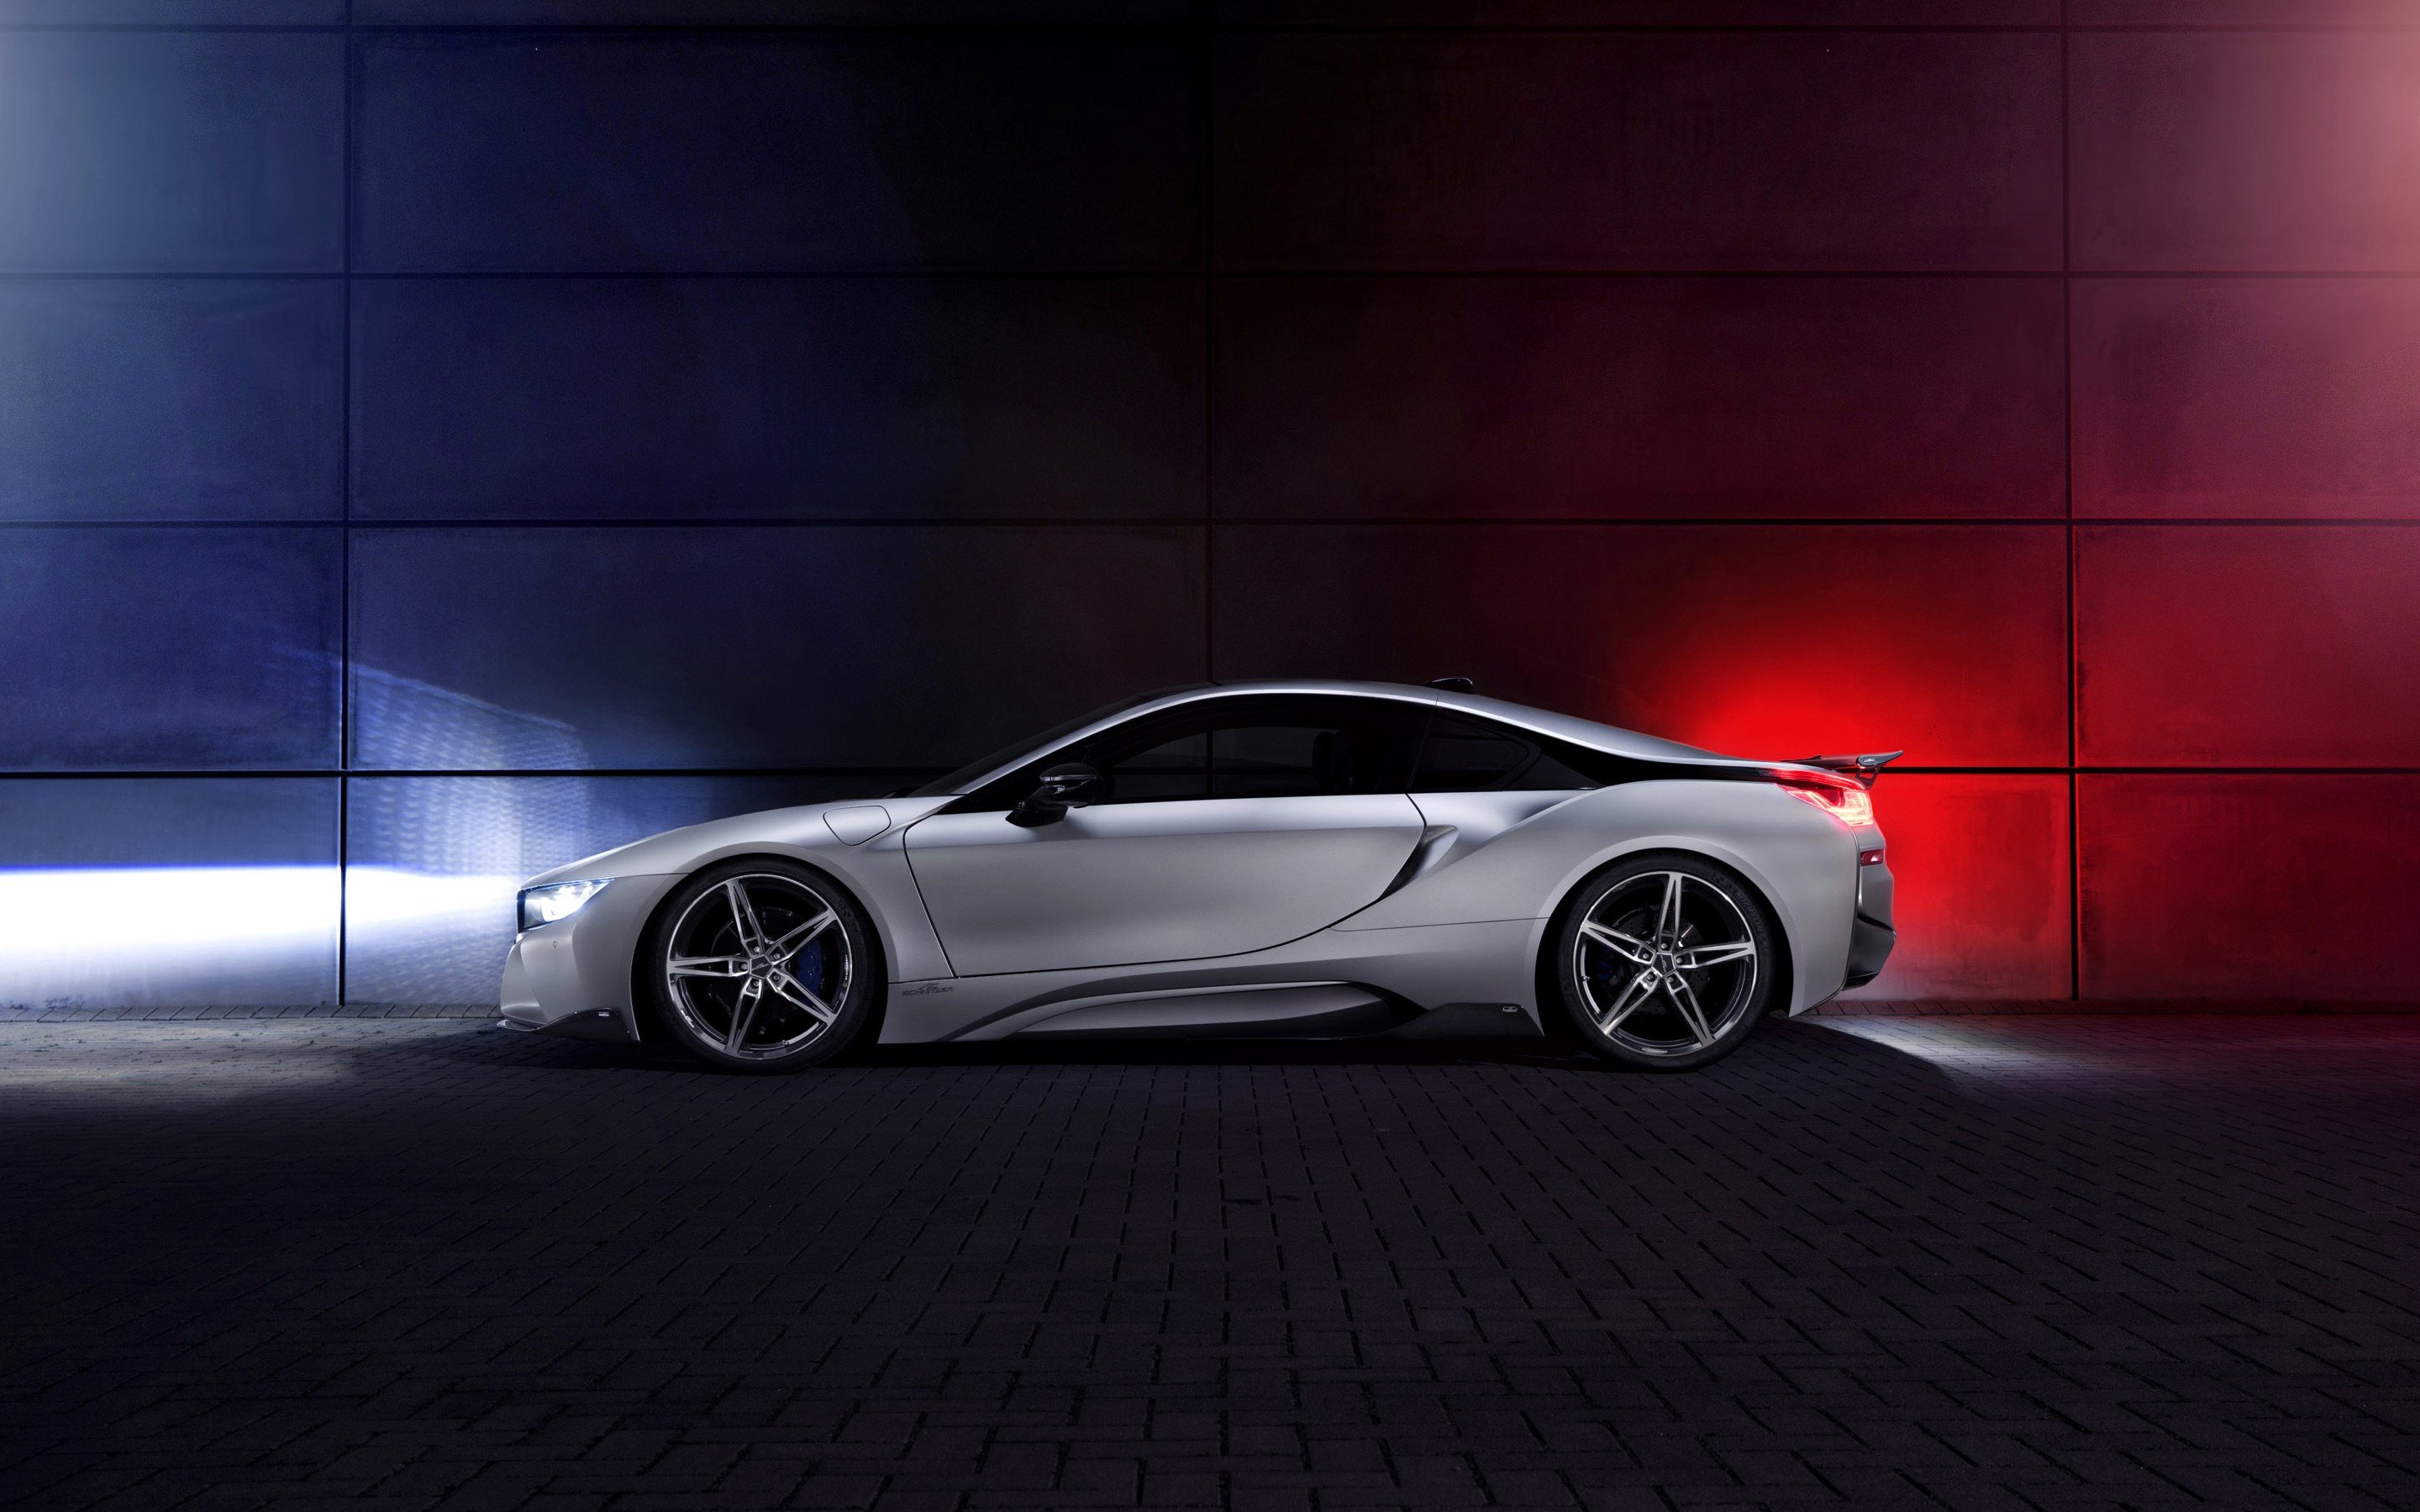 Latest 2015 Ac Schnitzer Bmw I8 3 Wallpaper Hd Car Wallpapers Free Download